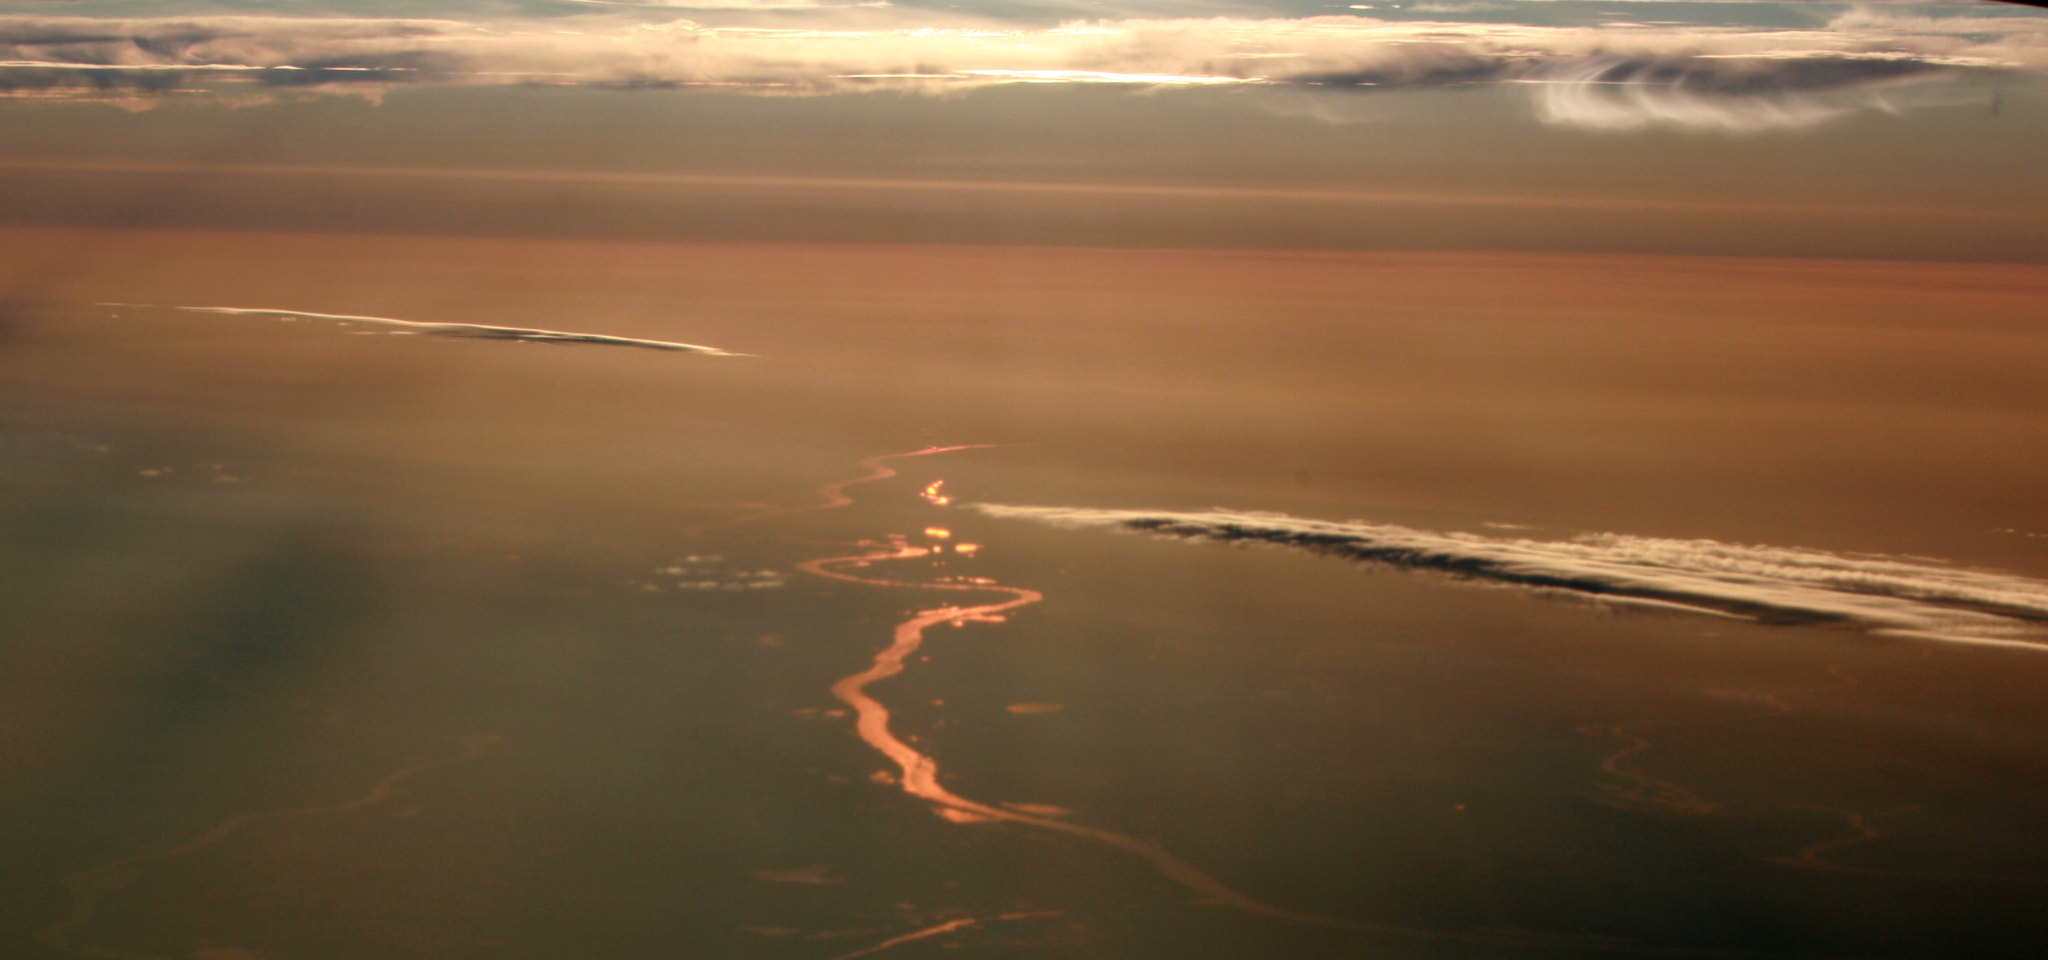 Photograph red river by Kristin Segbefia on 500px